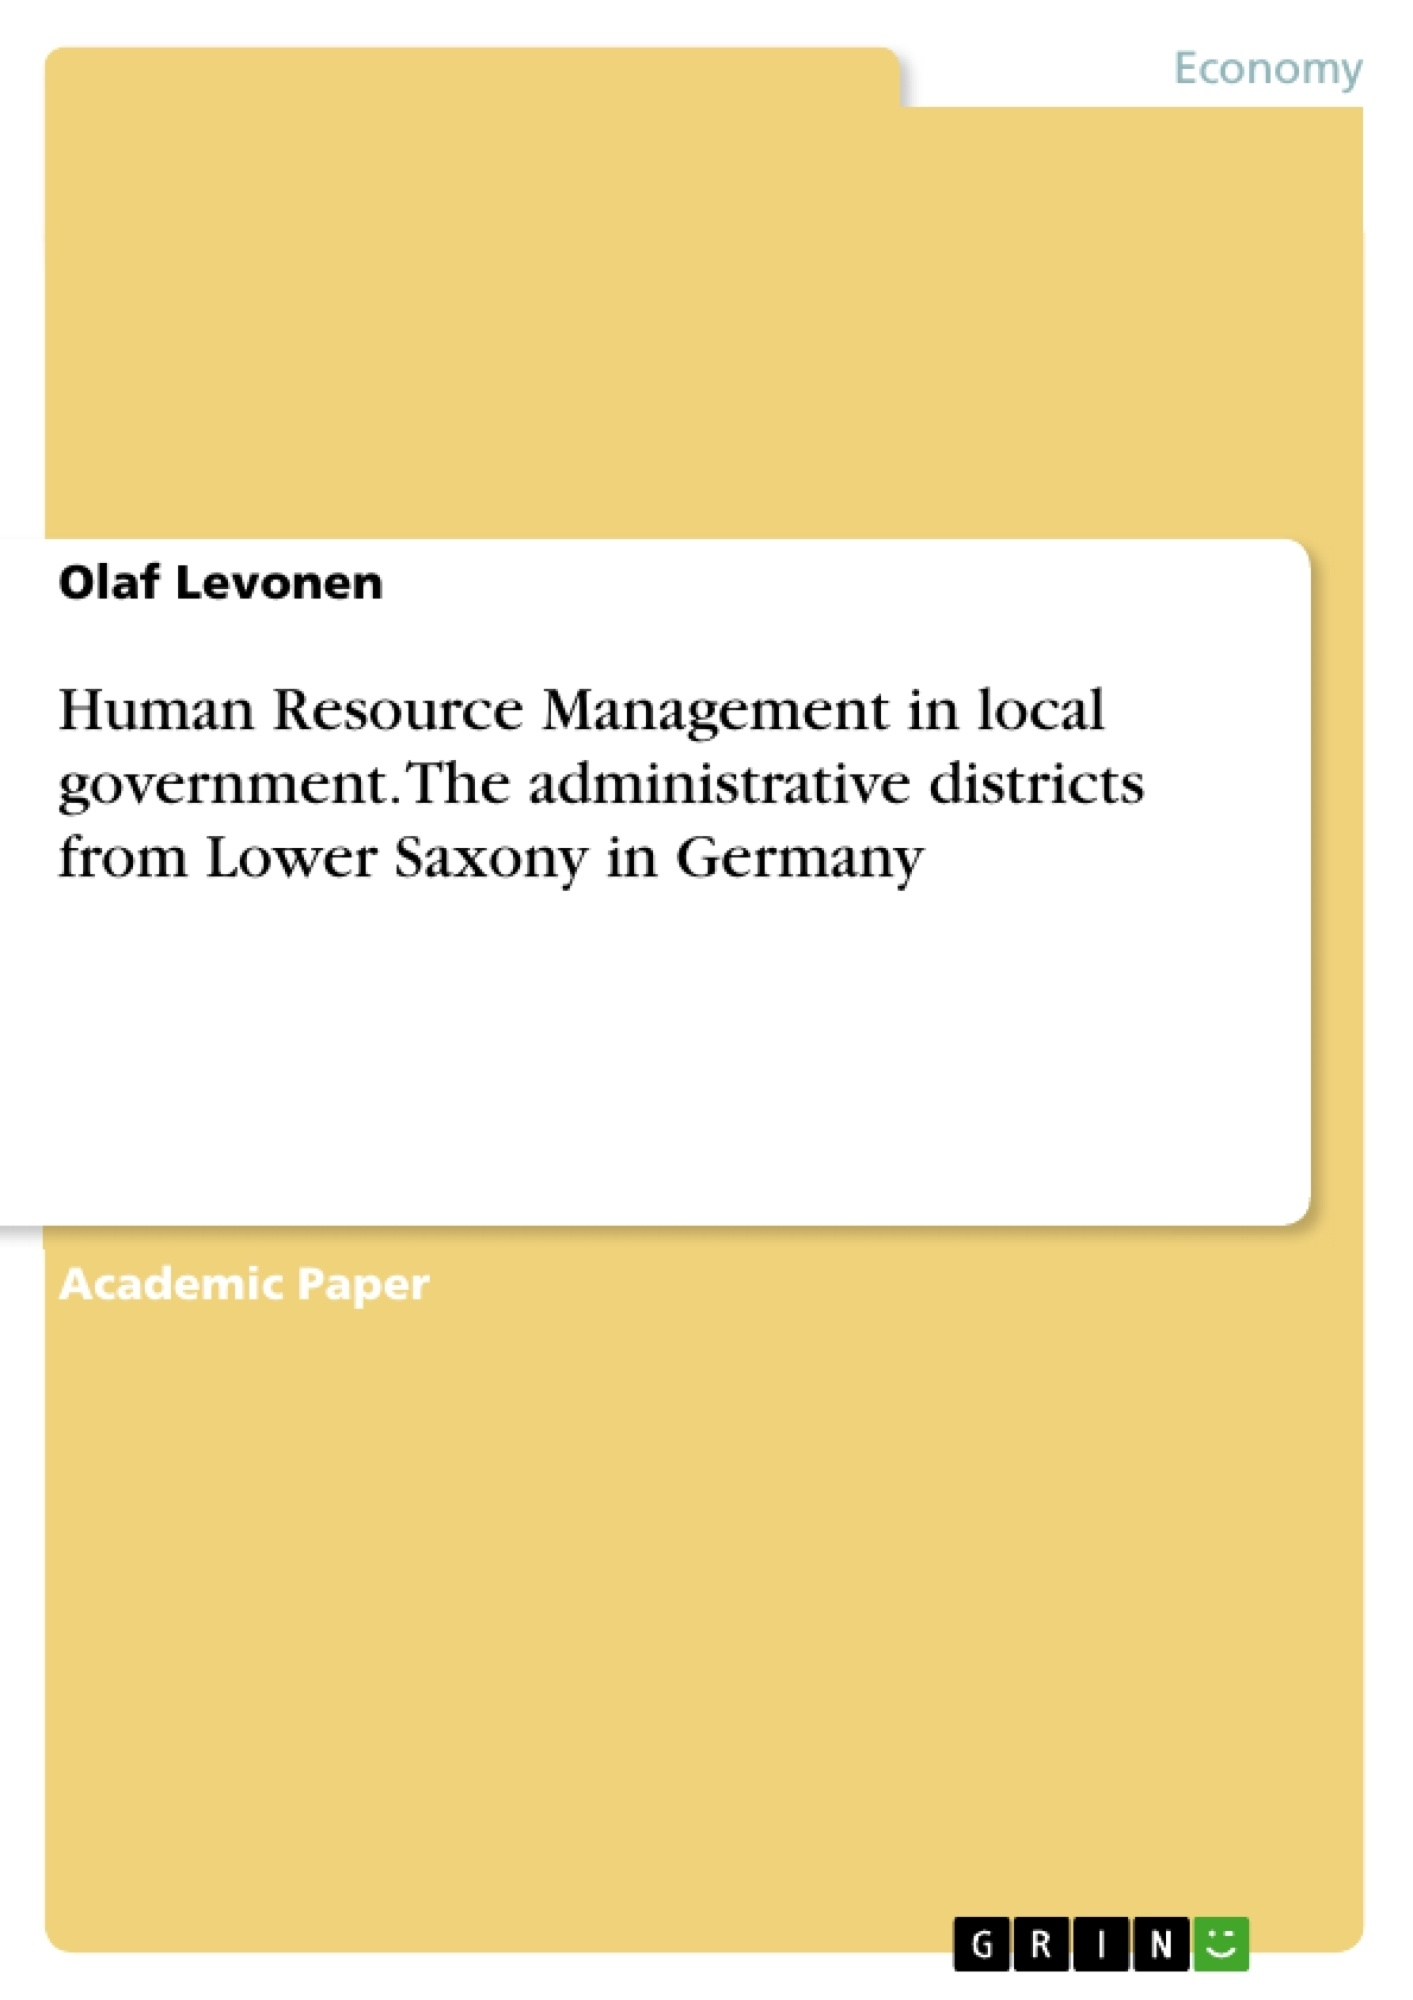 Title: Human Resource Management in local government. The administrative districts from Lower Saxony in Germany